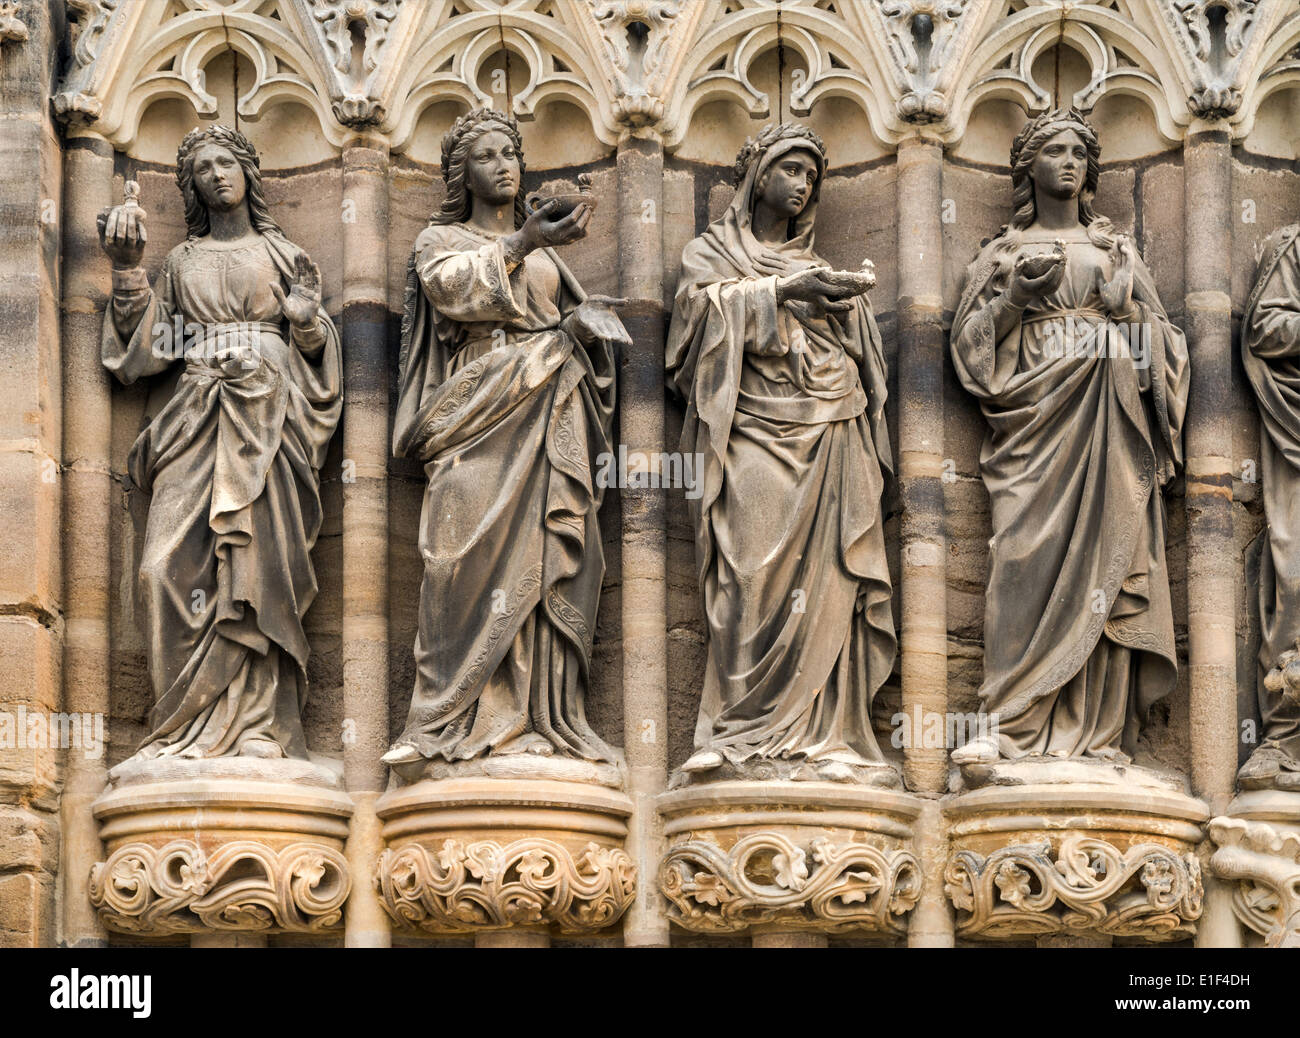 Statues at Dom St Marien (St Mary Church) in Zwickau, Saxony, Germany - Stock Image